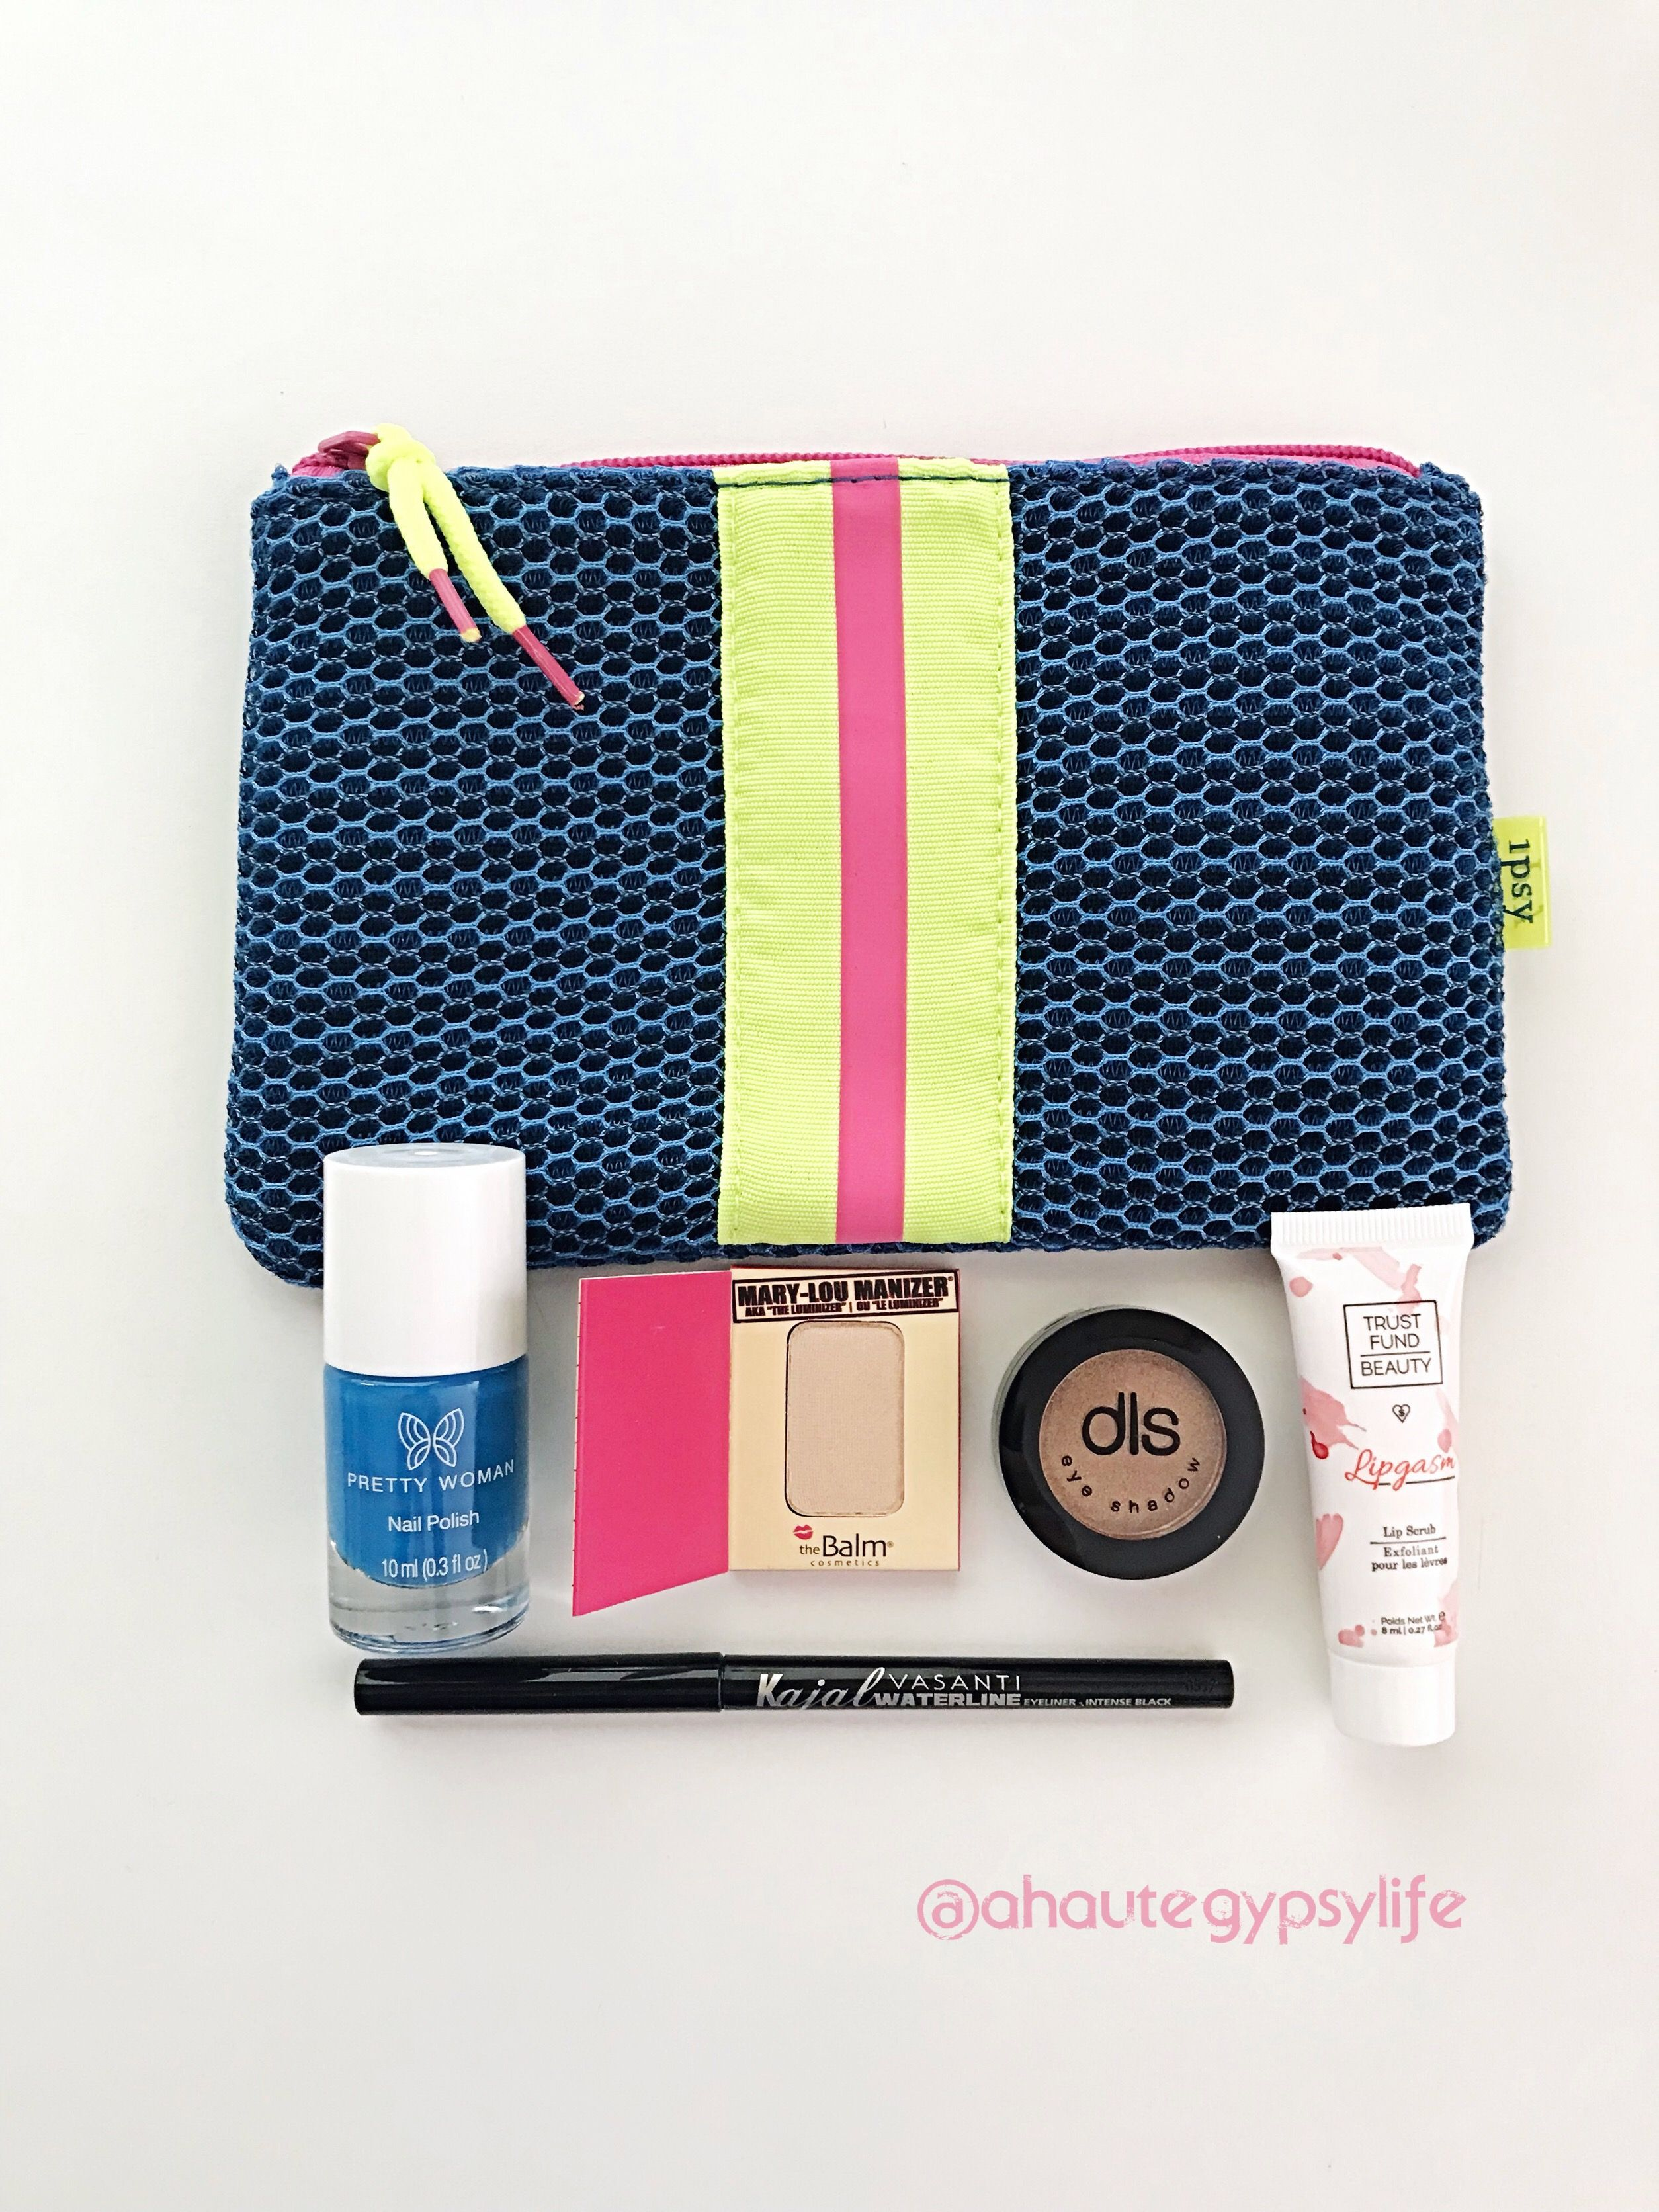 January Ipsy Glambag Monthly Beauty Makeup Box With Full Sized Deluxe Products Great Value For Money A Way To Build Out Your